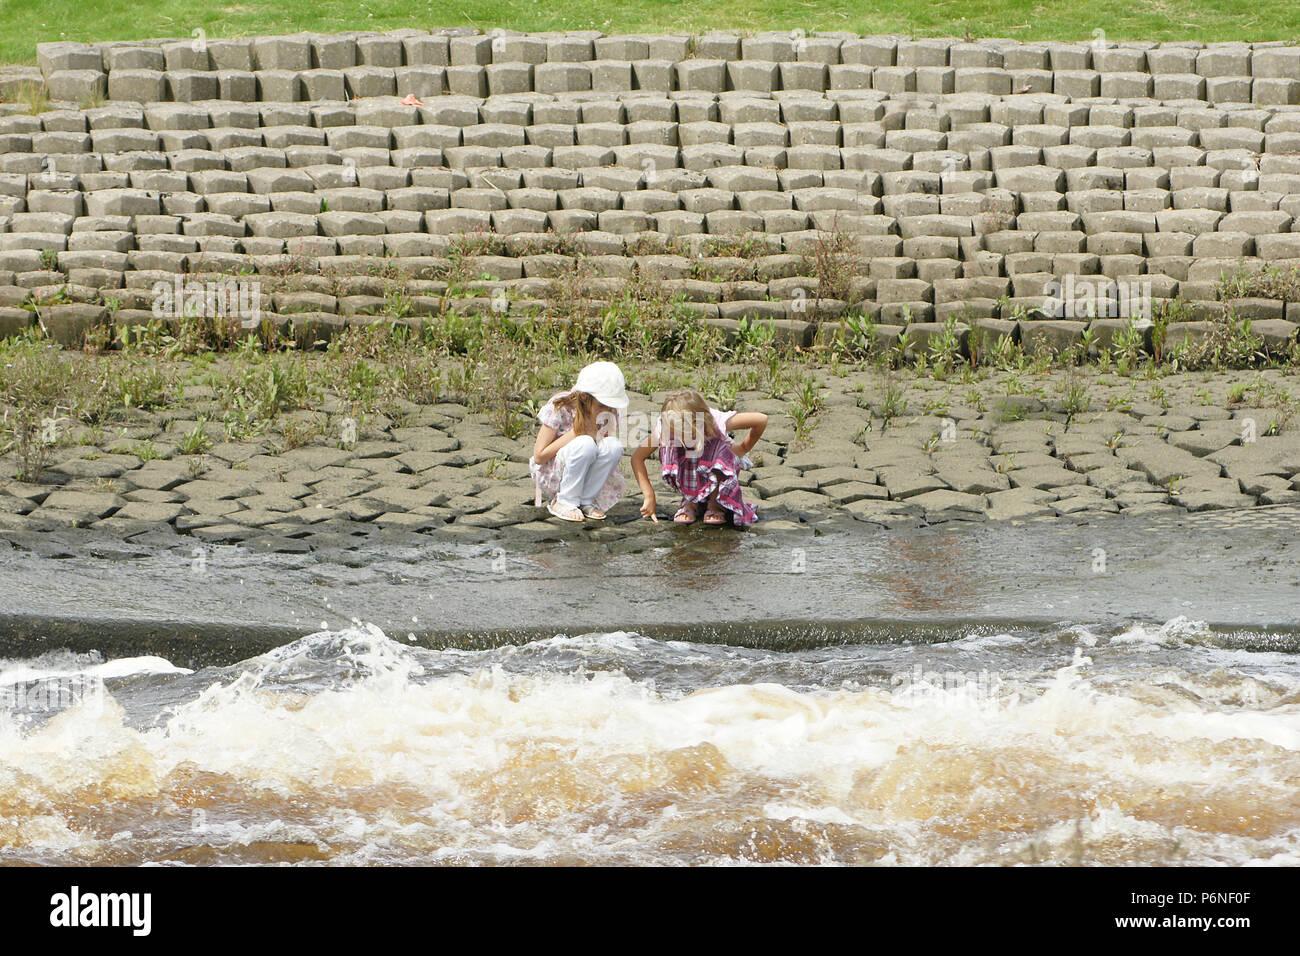 water safety, children playing near fast moving water Stock Photo